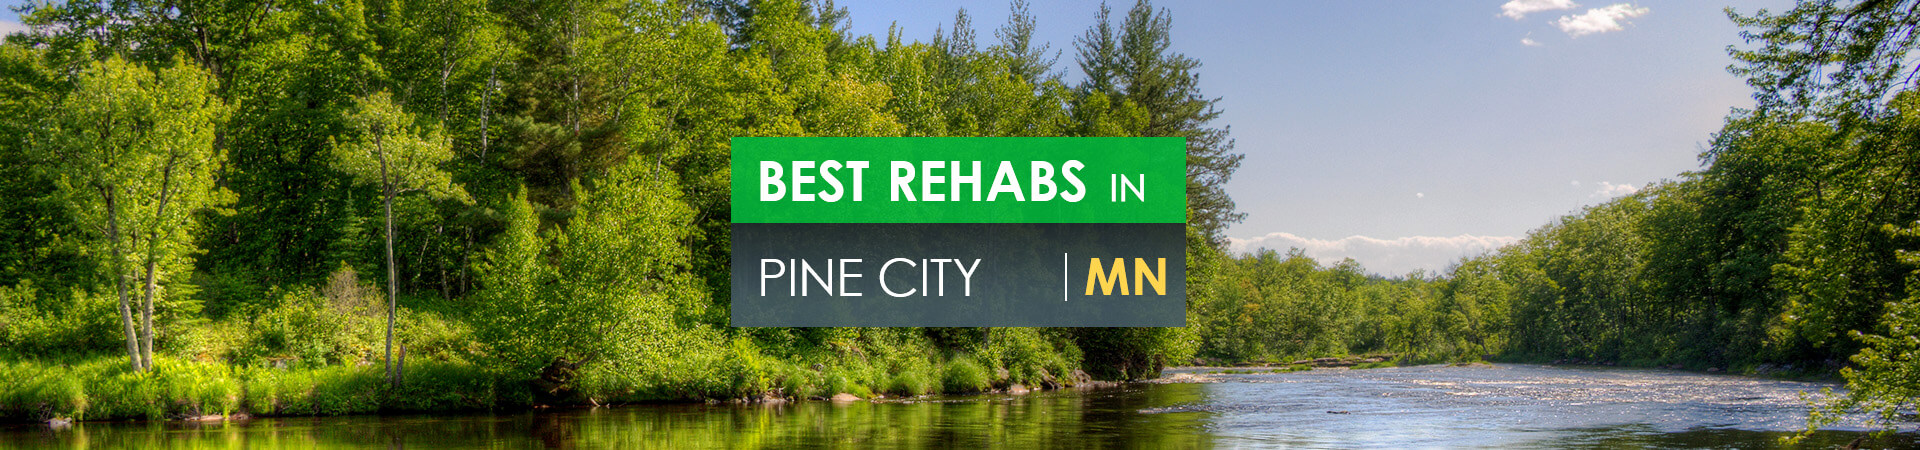 Best rehabs in Pine City, MN